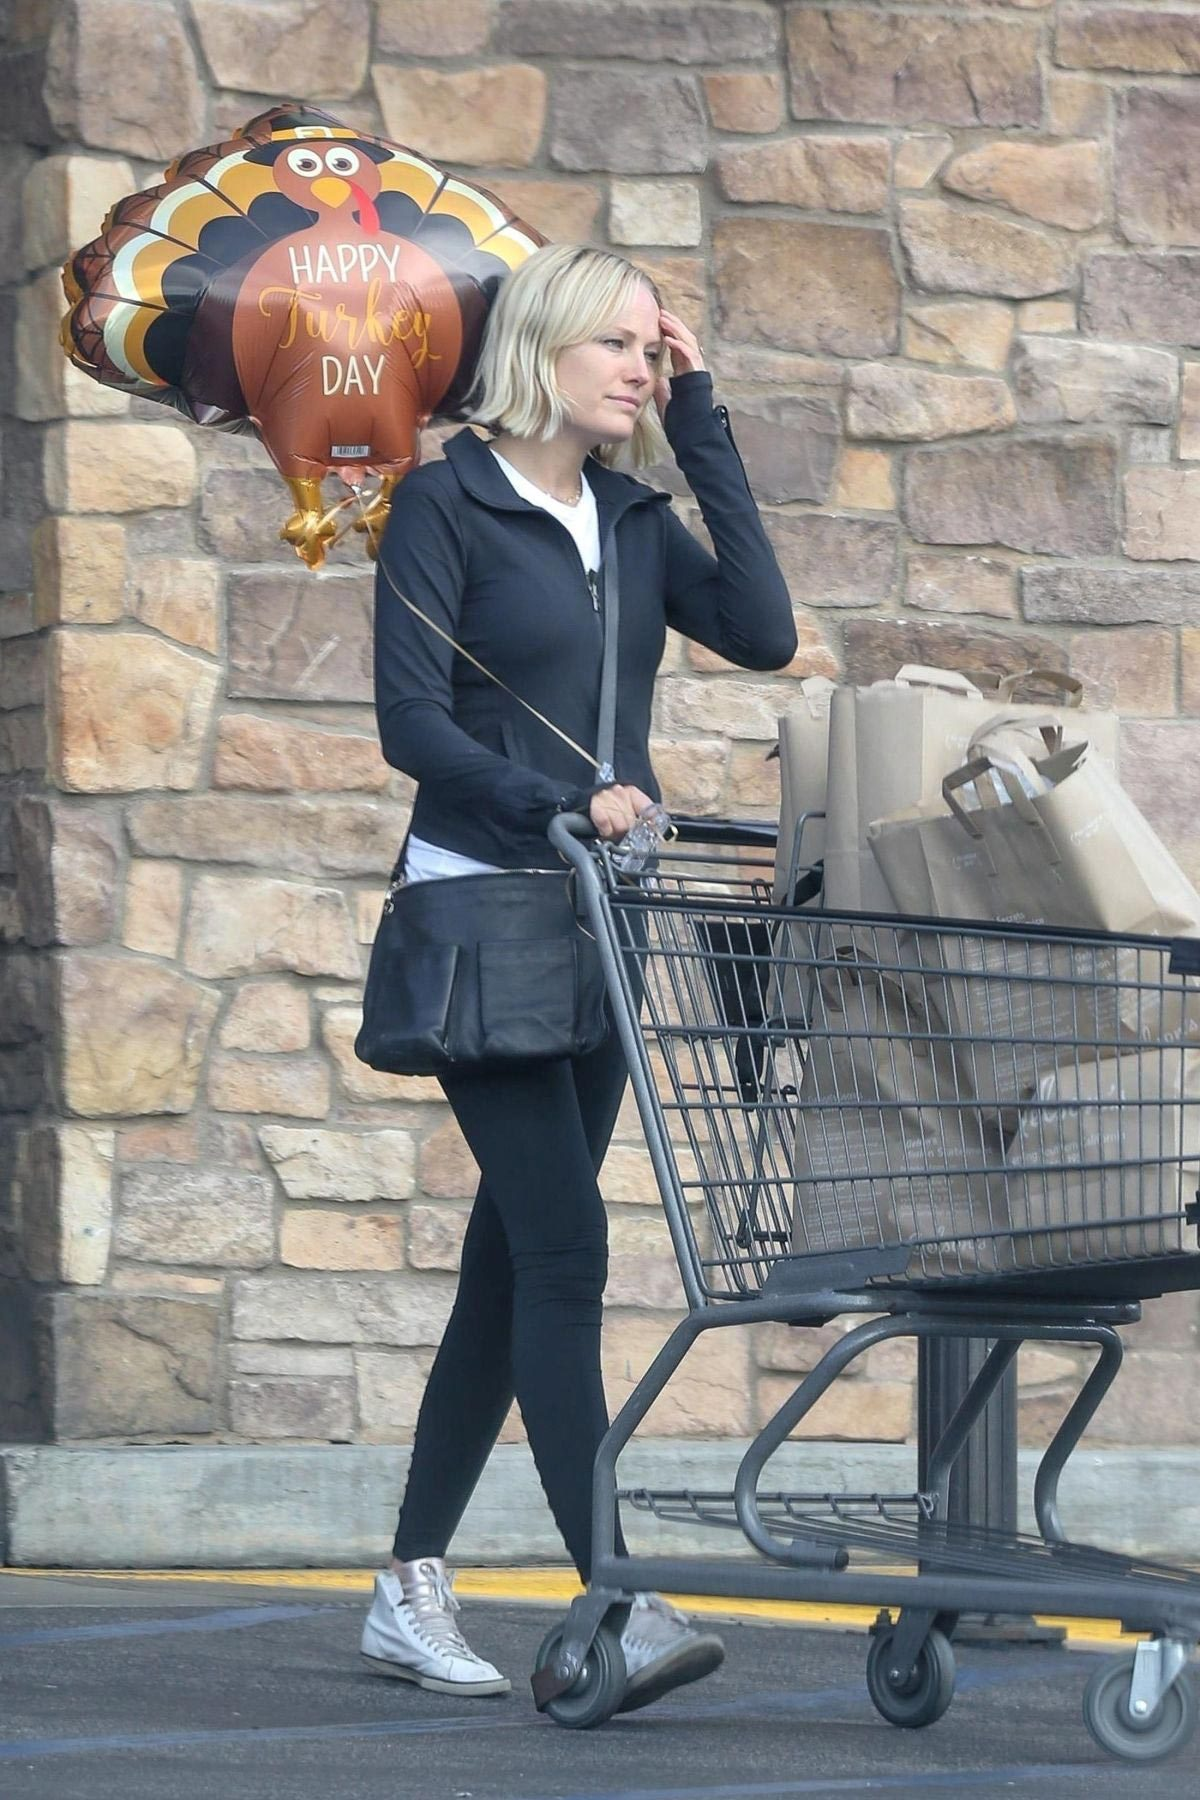 Malin Akerman Out Shopping in Los Angeles 2018 11 22 1